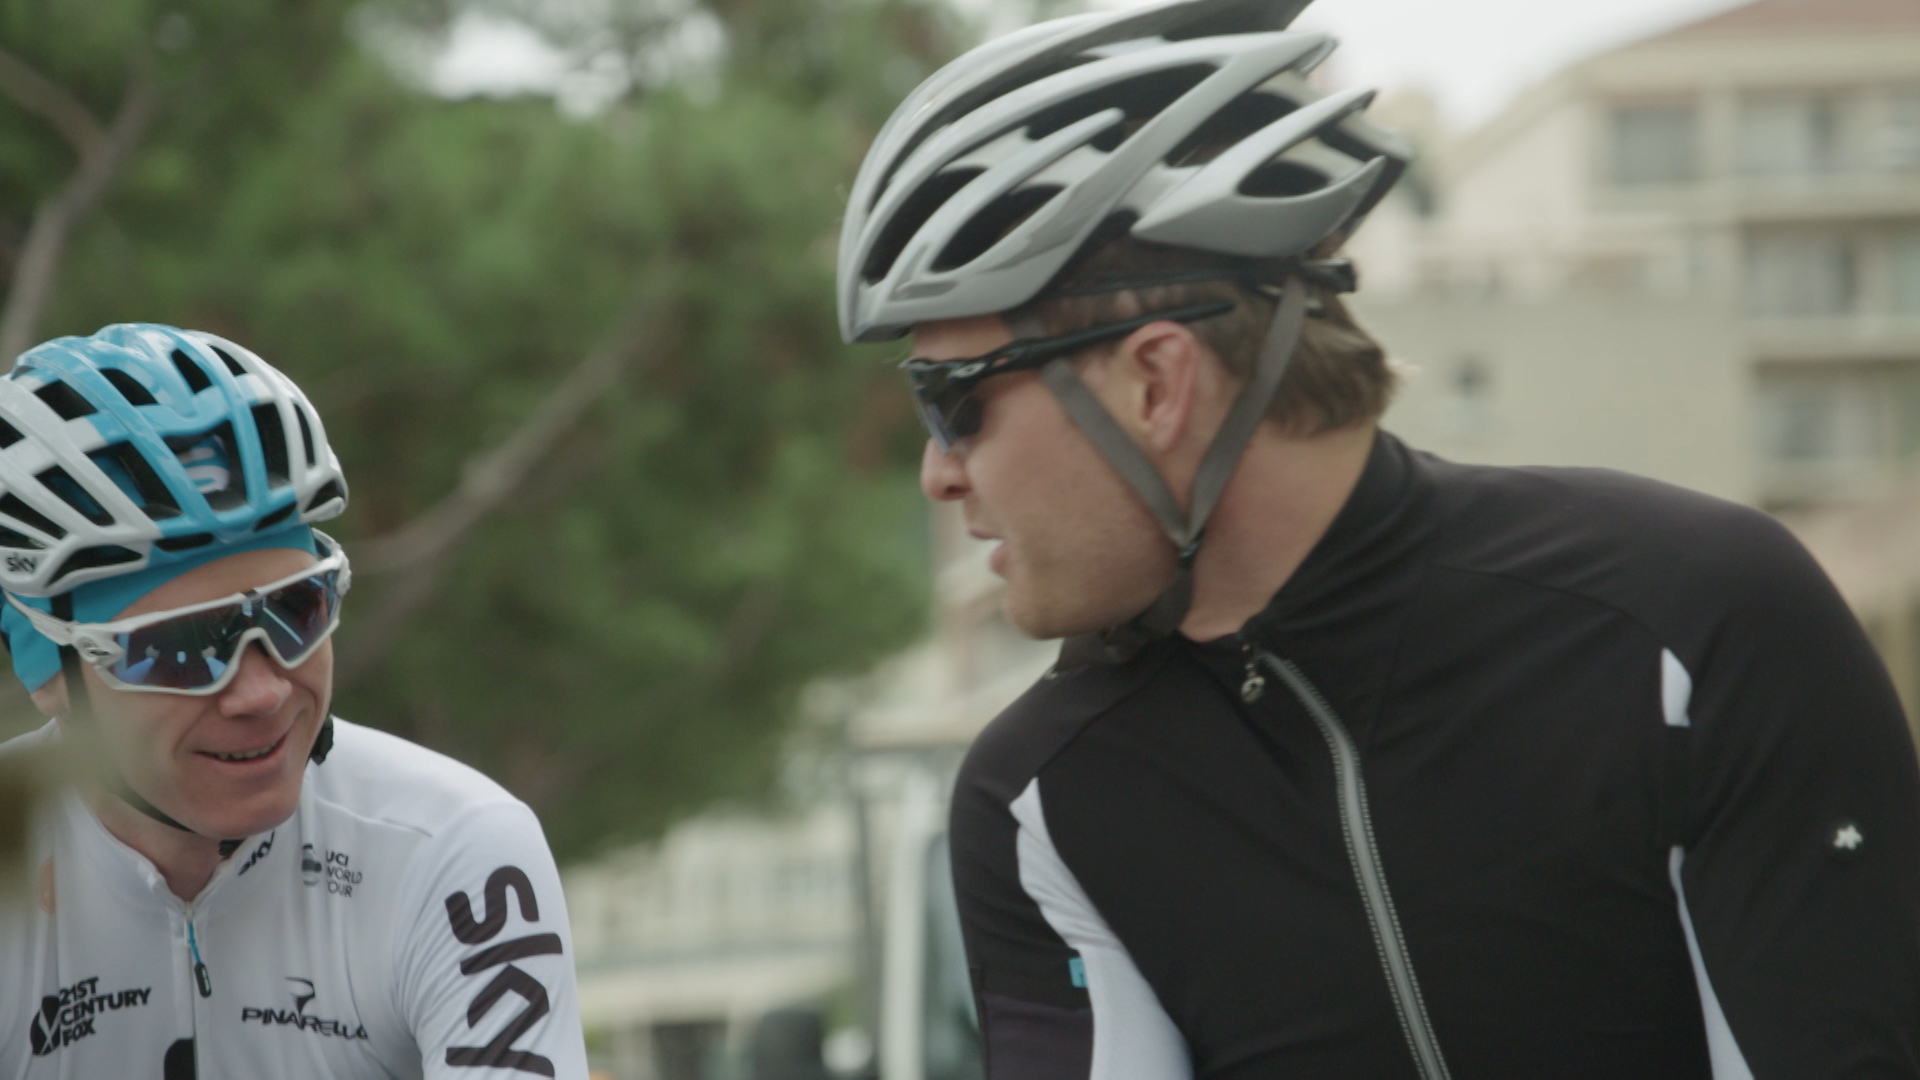 'What are you doing here?' Froome strays on to Rosberg's patch